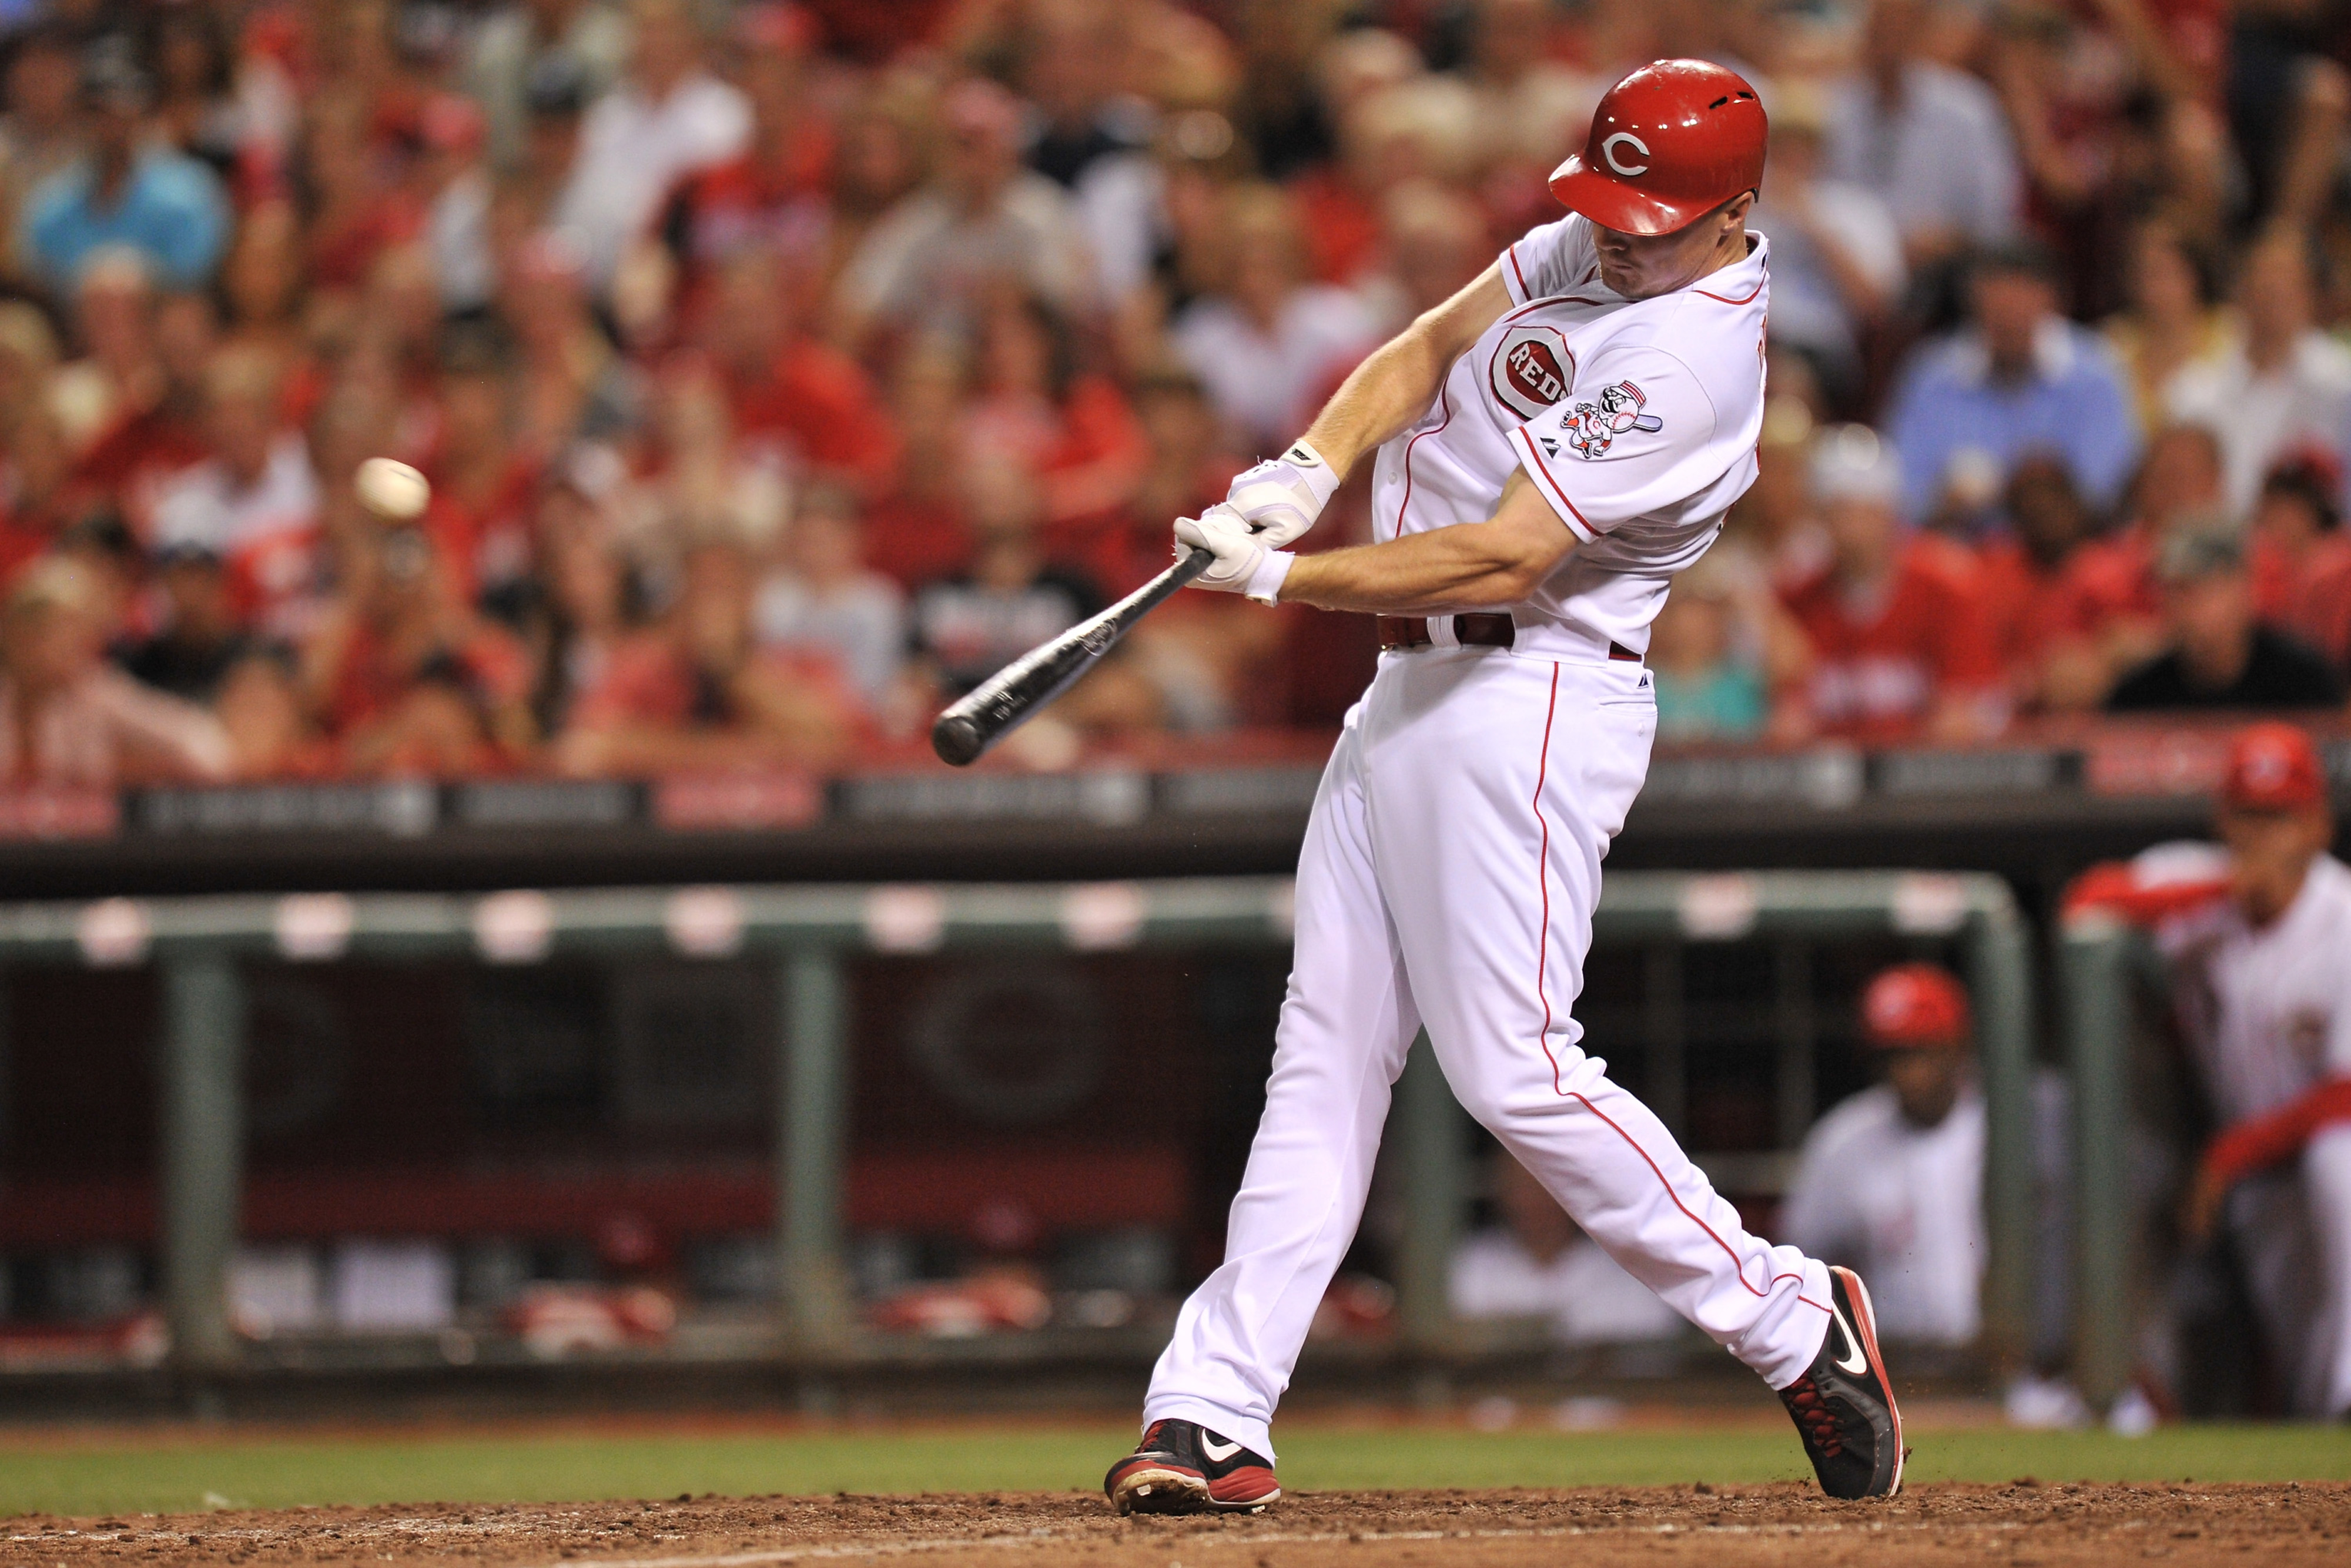 Jay Bruce robs homer, hits his own to send Reds to extras